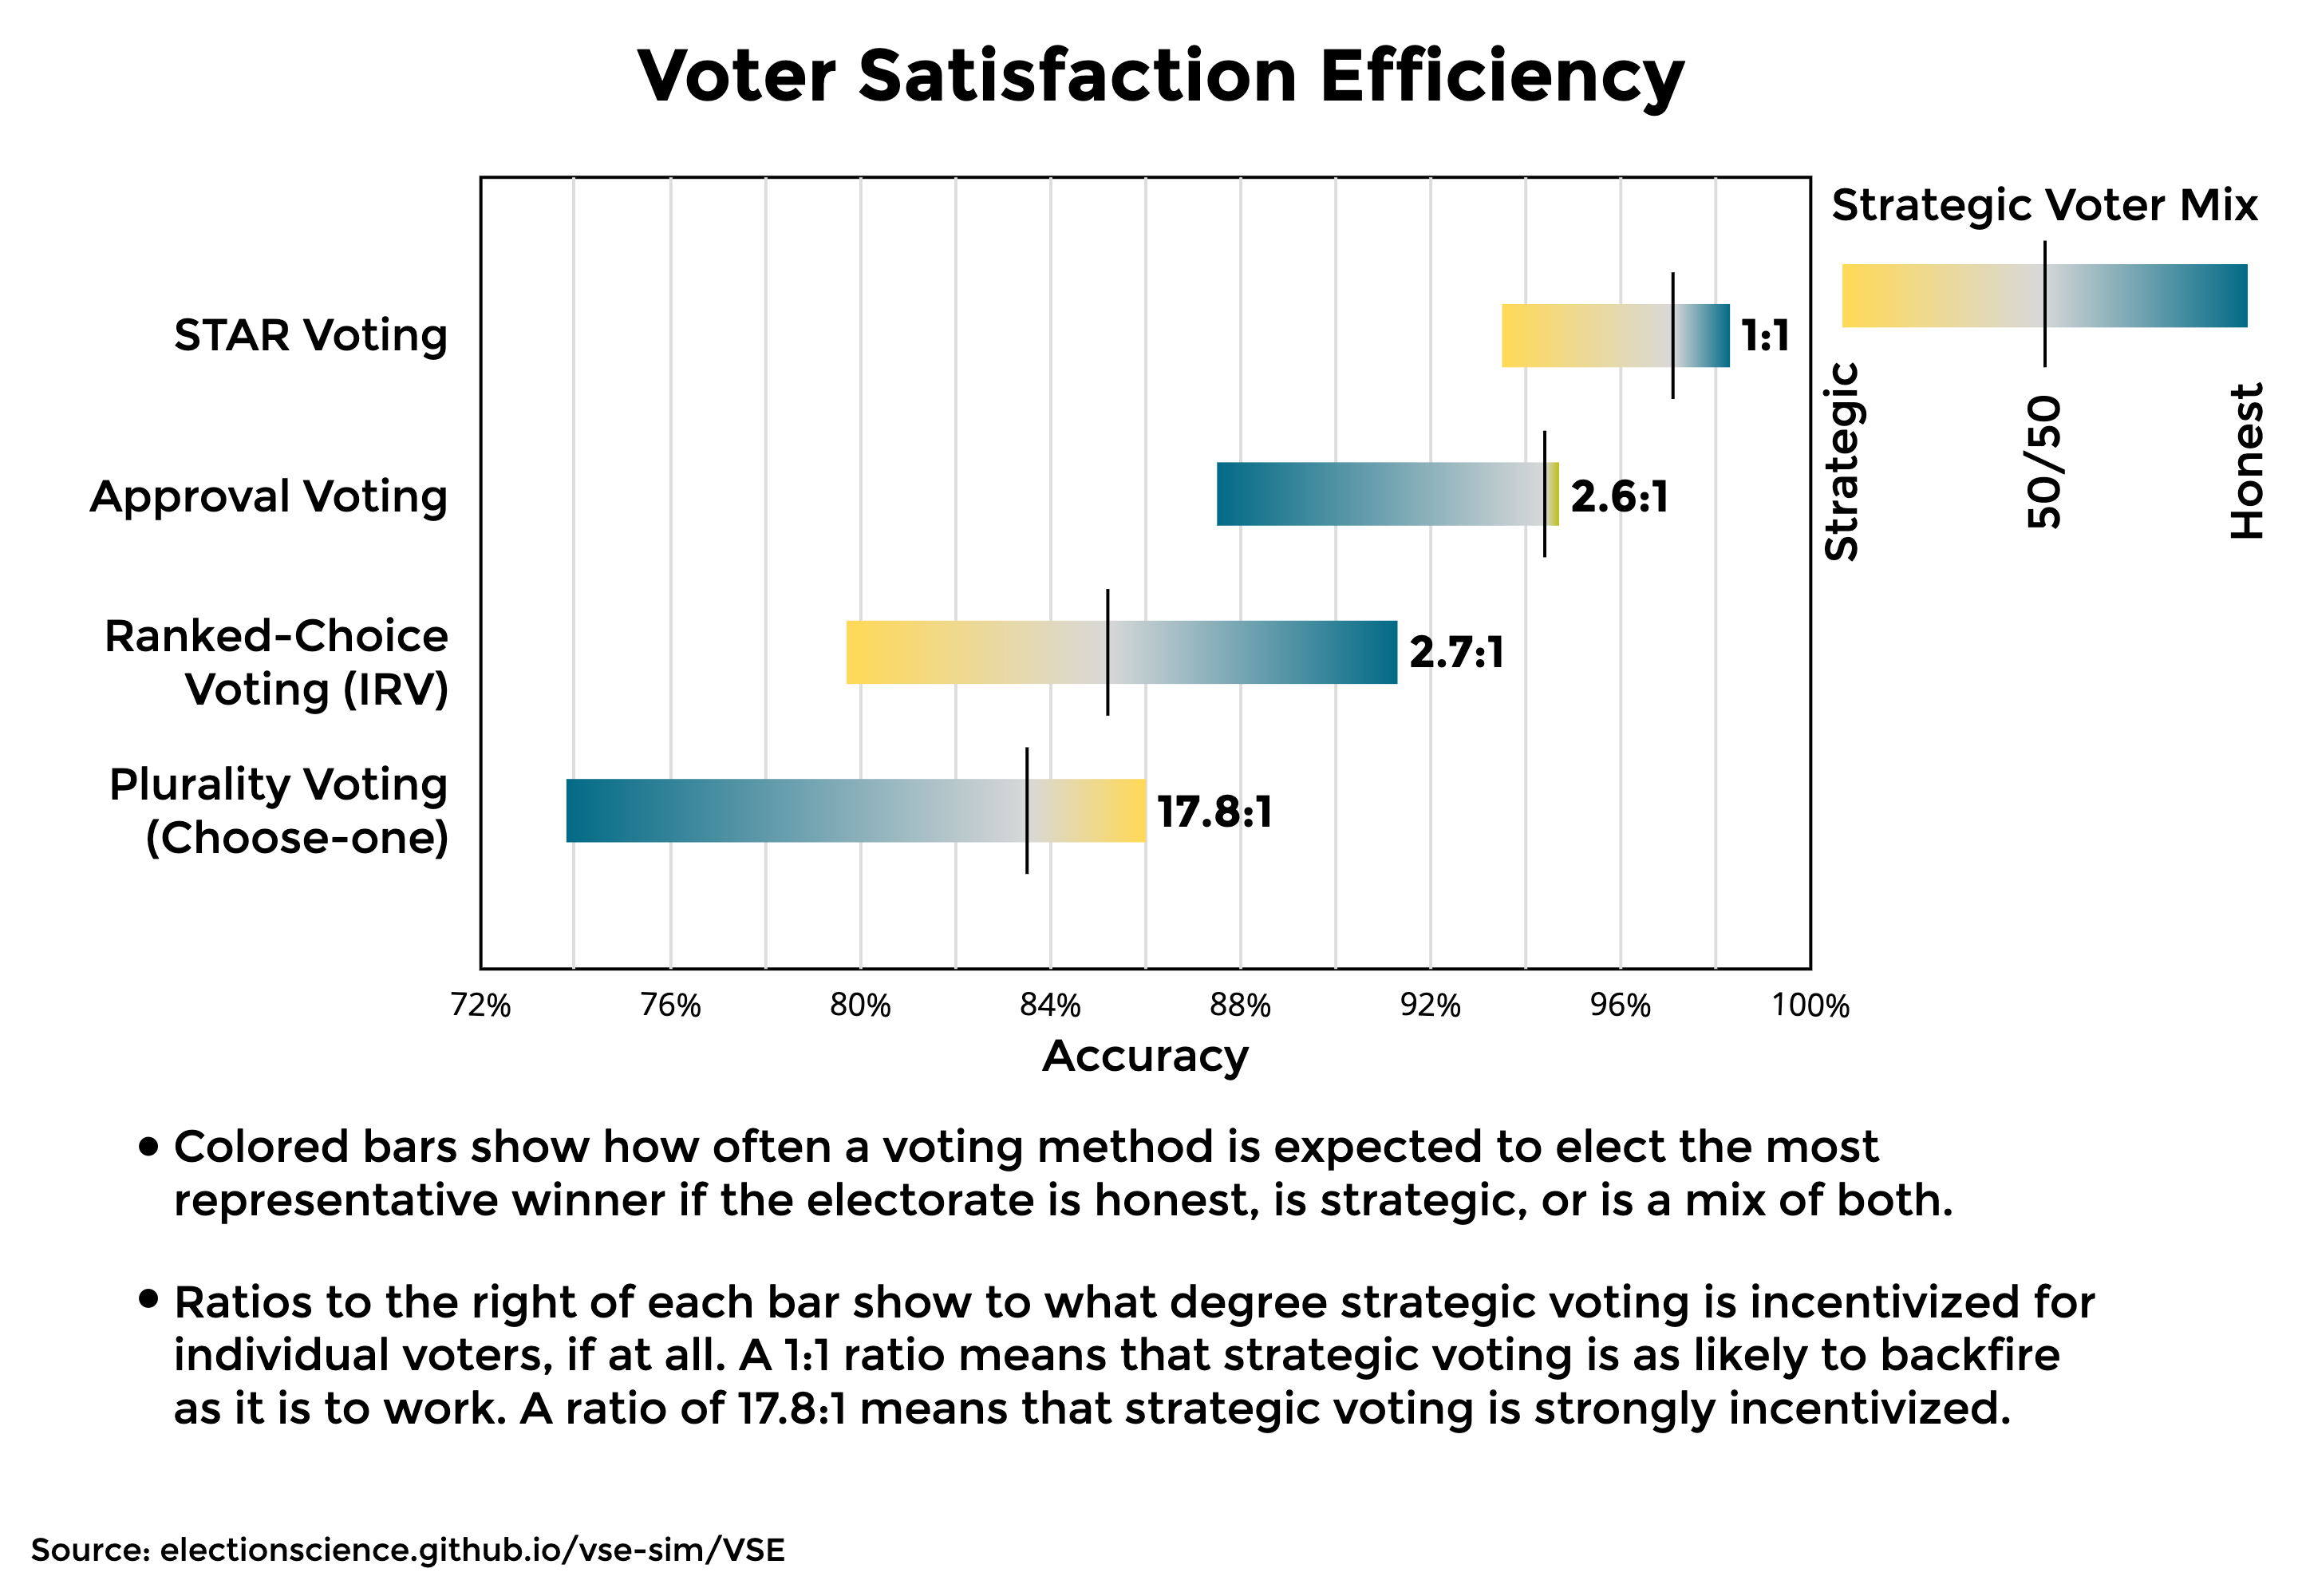 A chart depicting the nature of Ranked Choice Voting to trend toward worse overall results than our current Choose-One voting system. The chart also shows that Approval Voting and STAR Voting both perform far better than either of the other two, with STAR performing particularly well without incentivizing strategic voting.